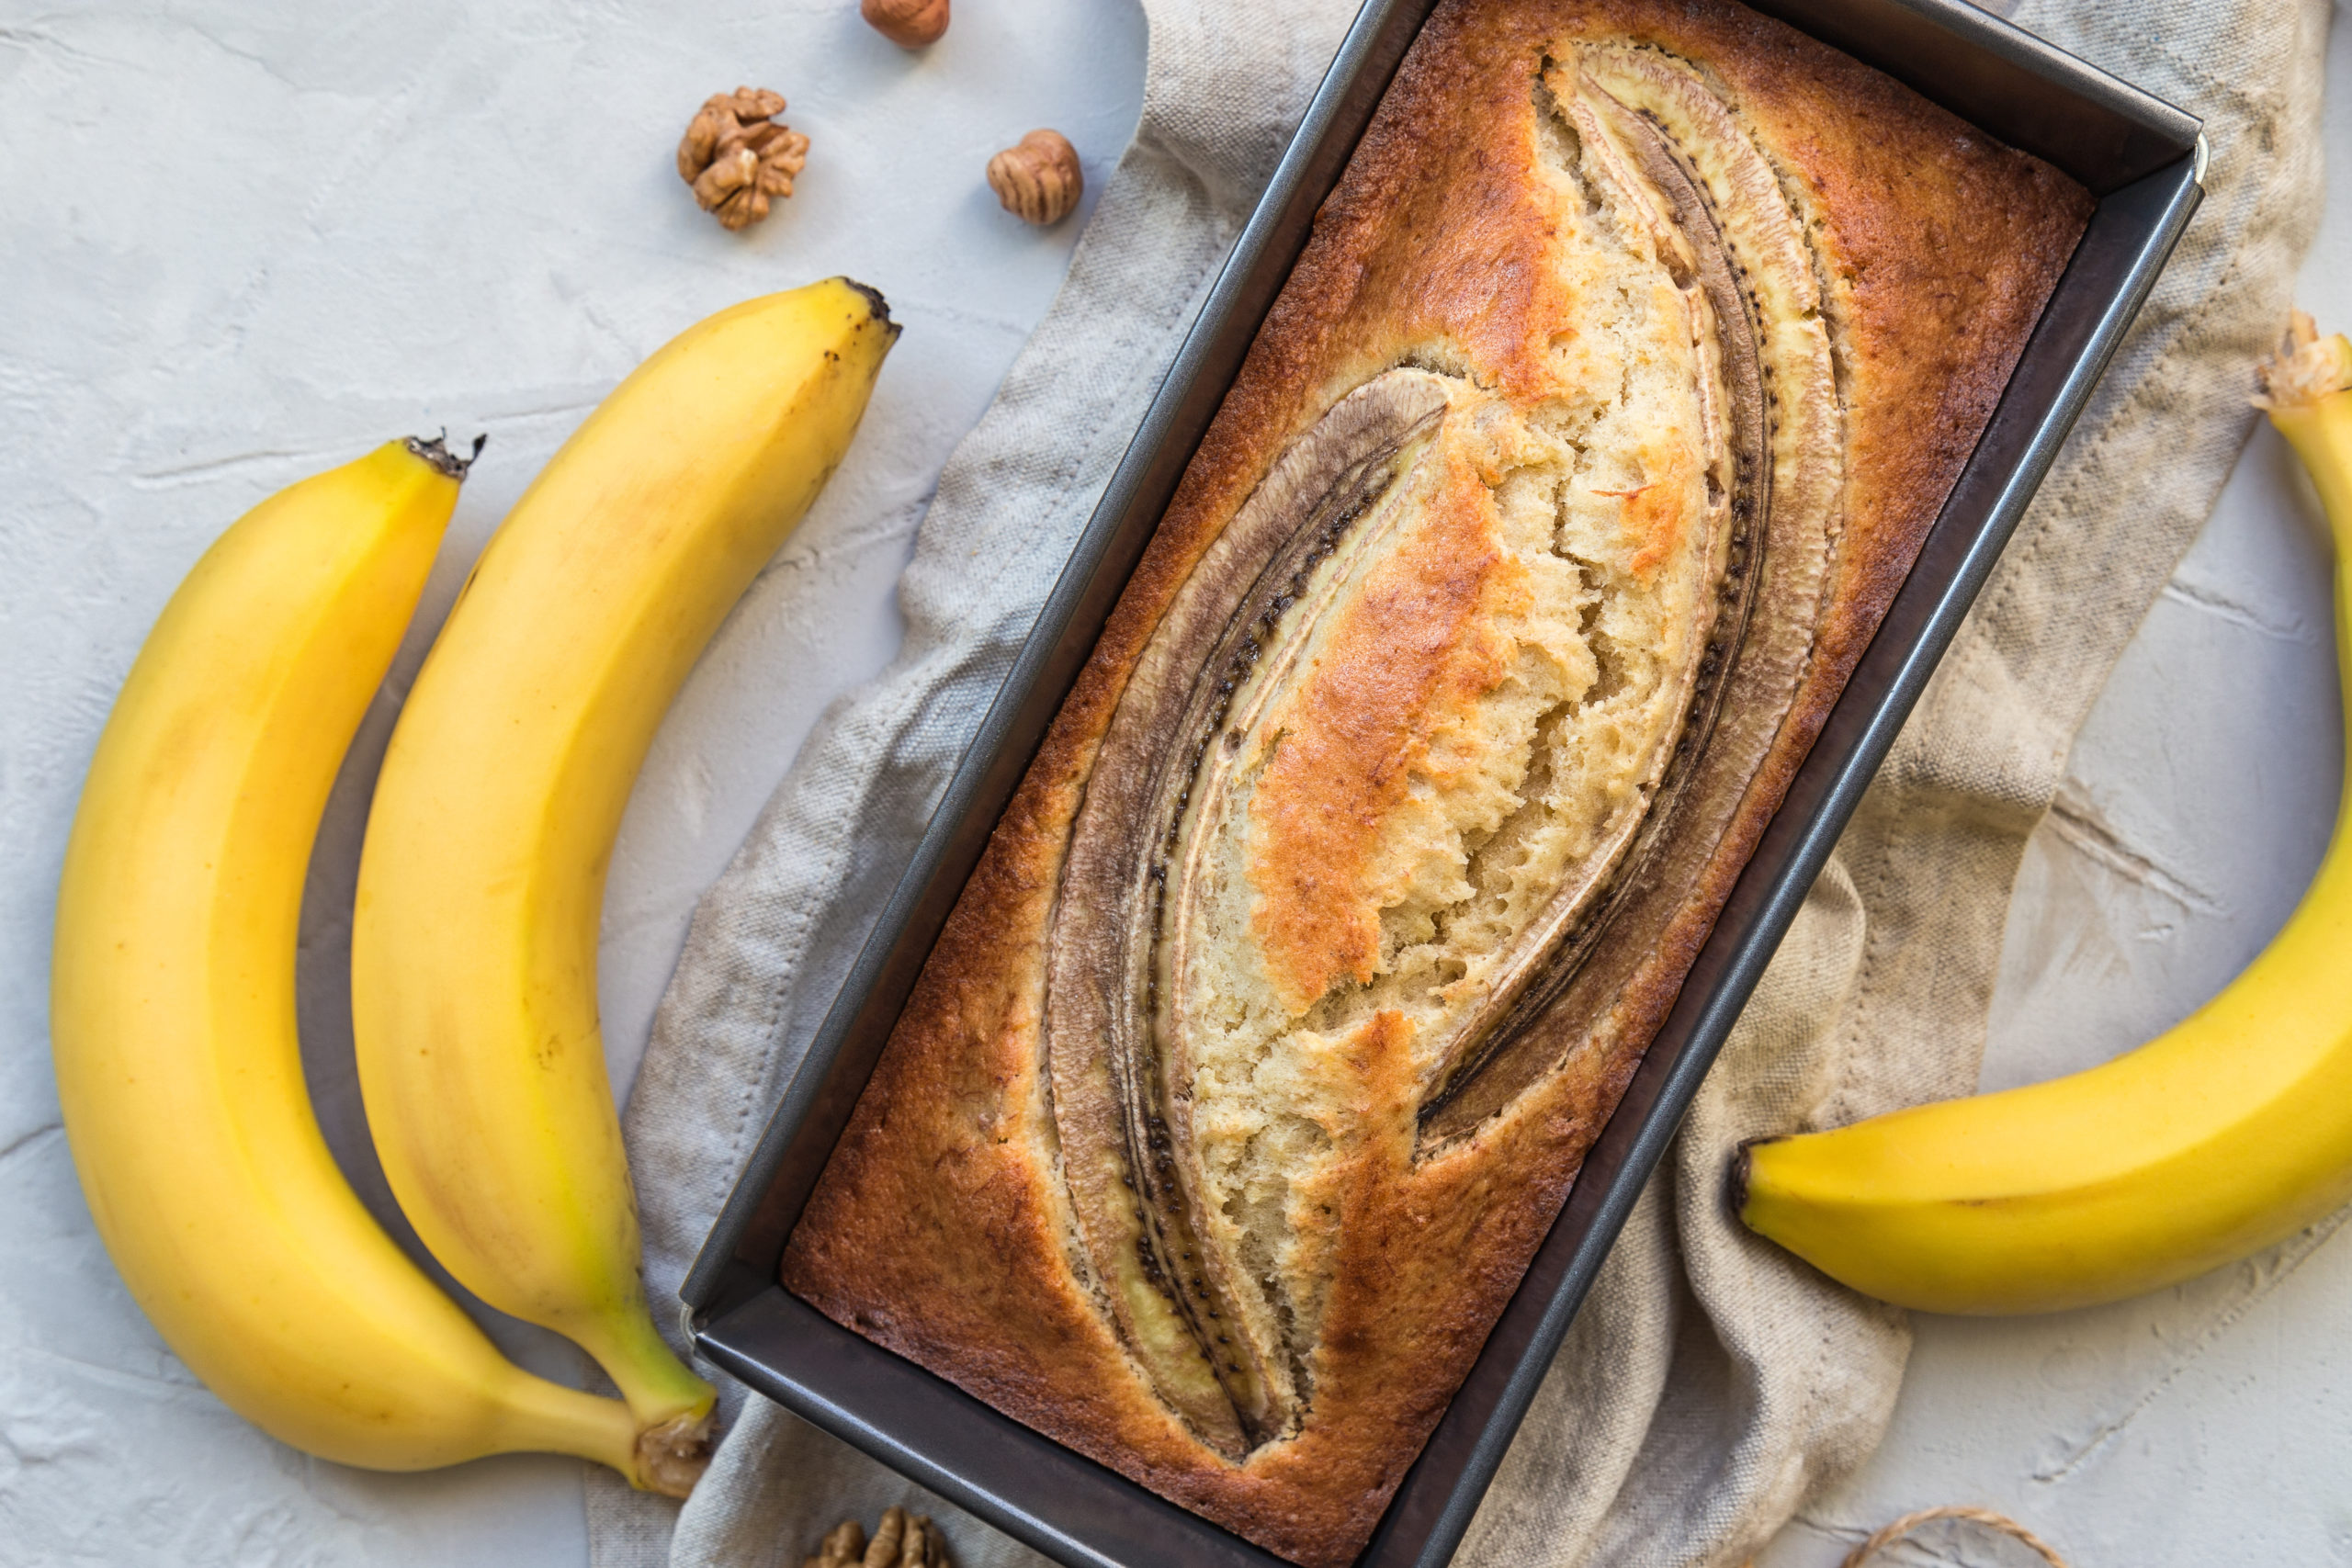 Substitute for Banana in Baking